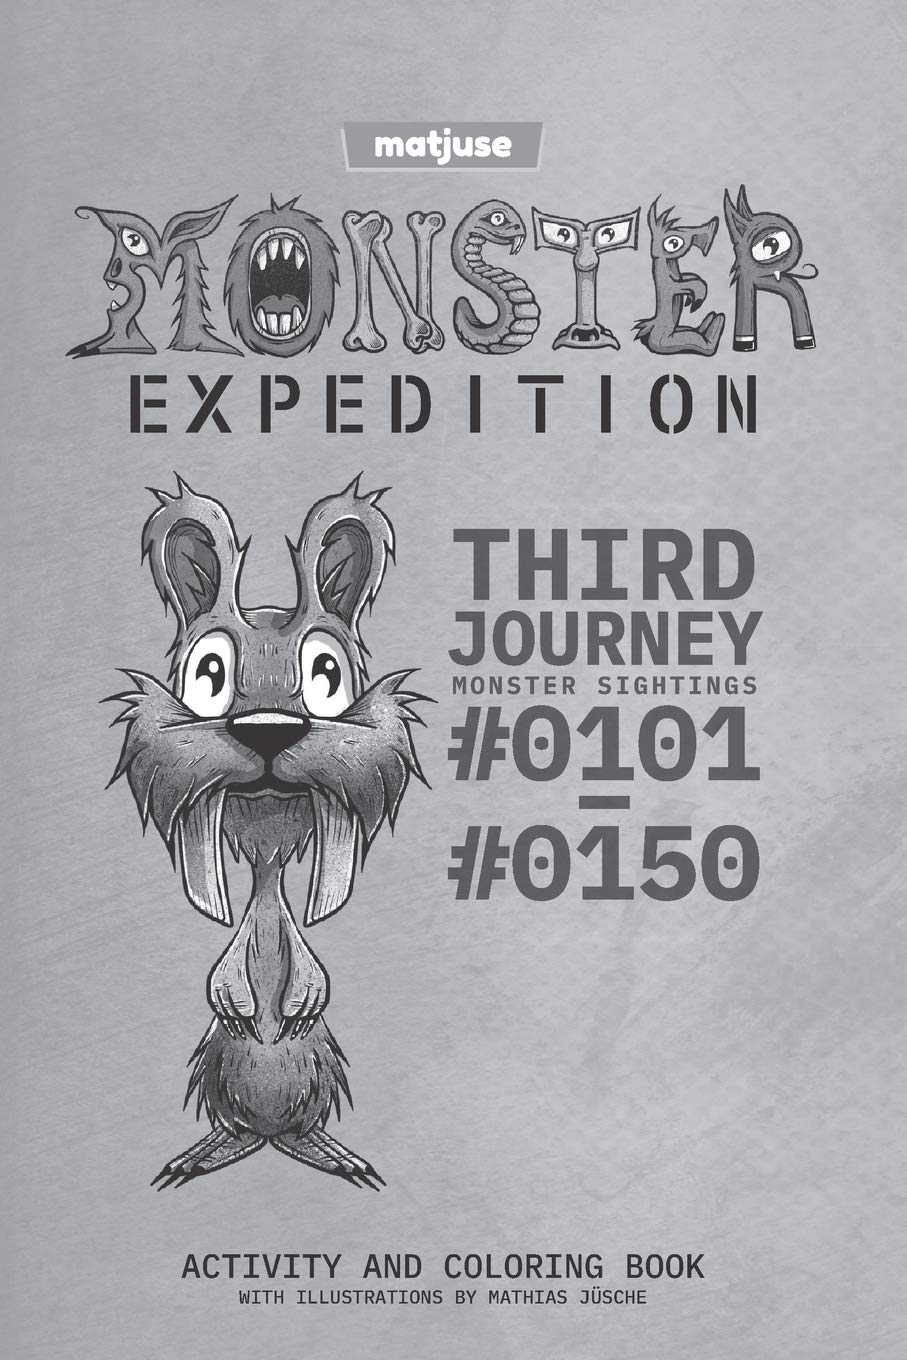 Matjuse Monster Expedition Third Journey Monster Sightings 0101 To 0150 Activity And Coloring Book With Illustrations By Mathias Jusche English Version Jusche Mathias 9781699464786 Amazon Com Books